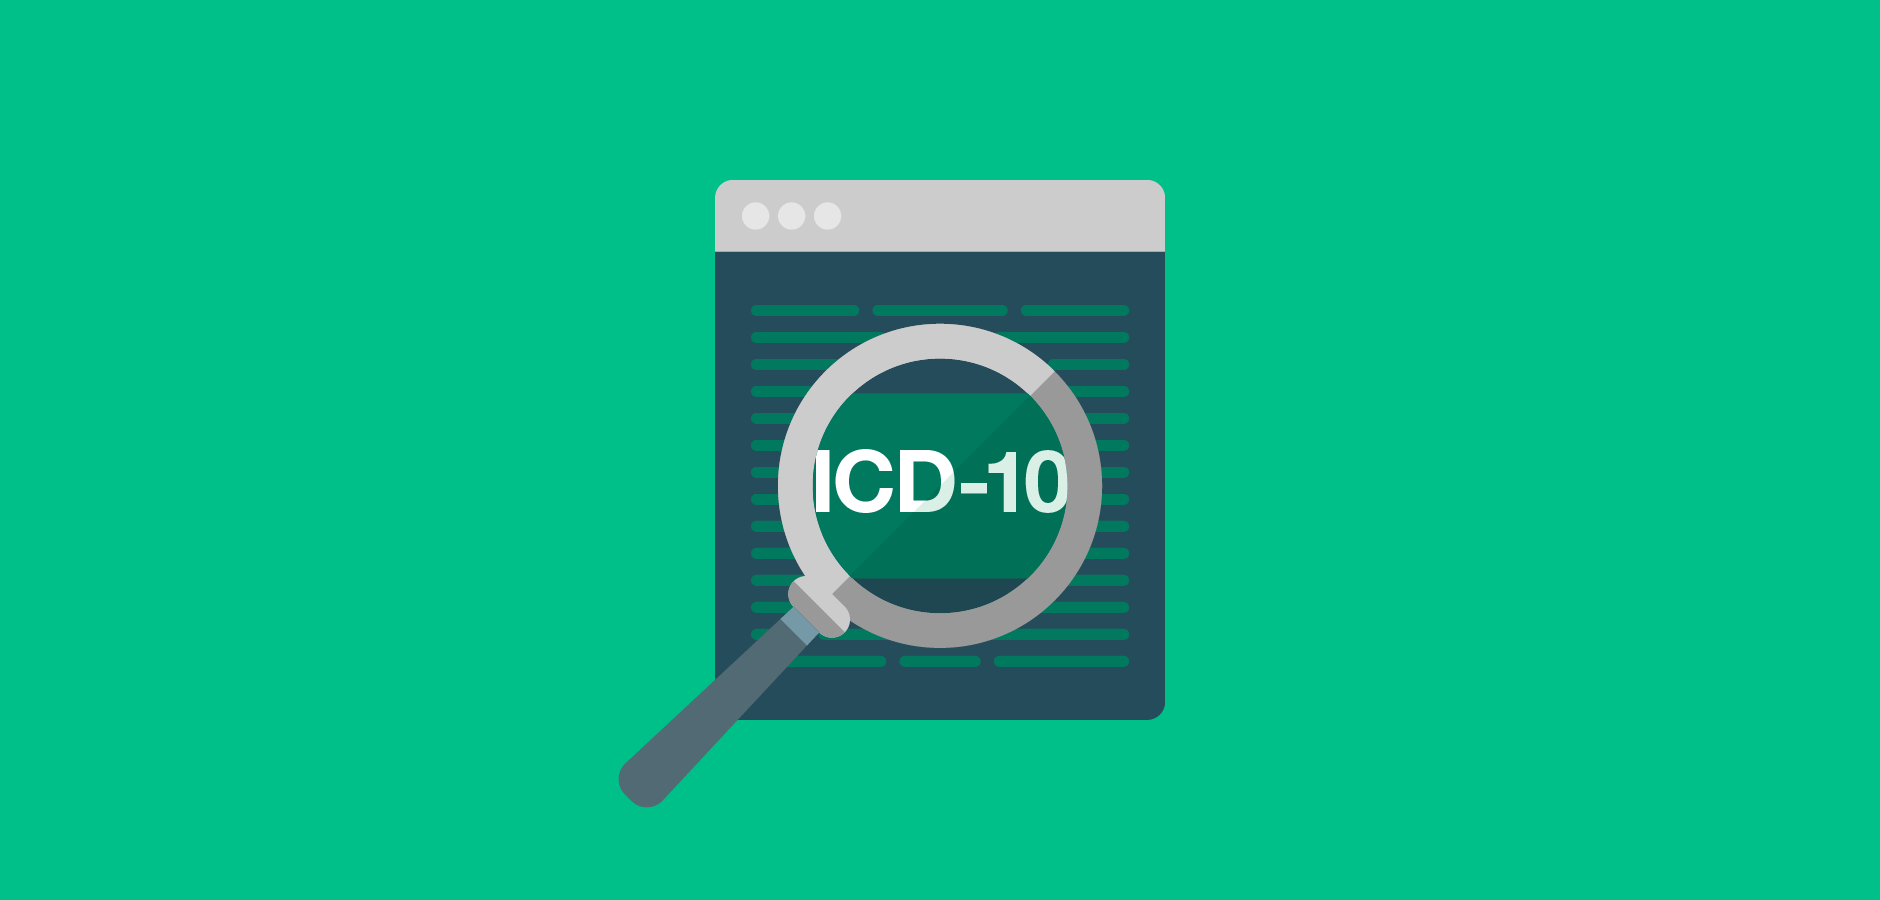 ICD-10 Quick Clips: How to Find the Correct Diagnosis Code